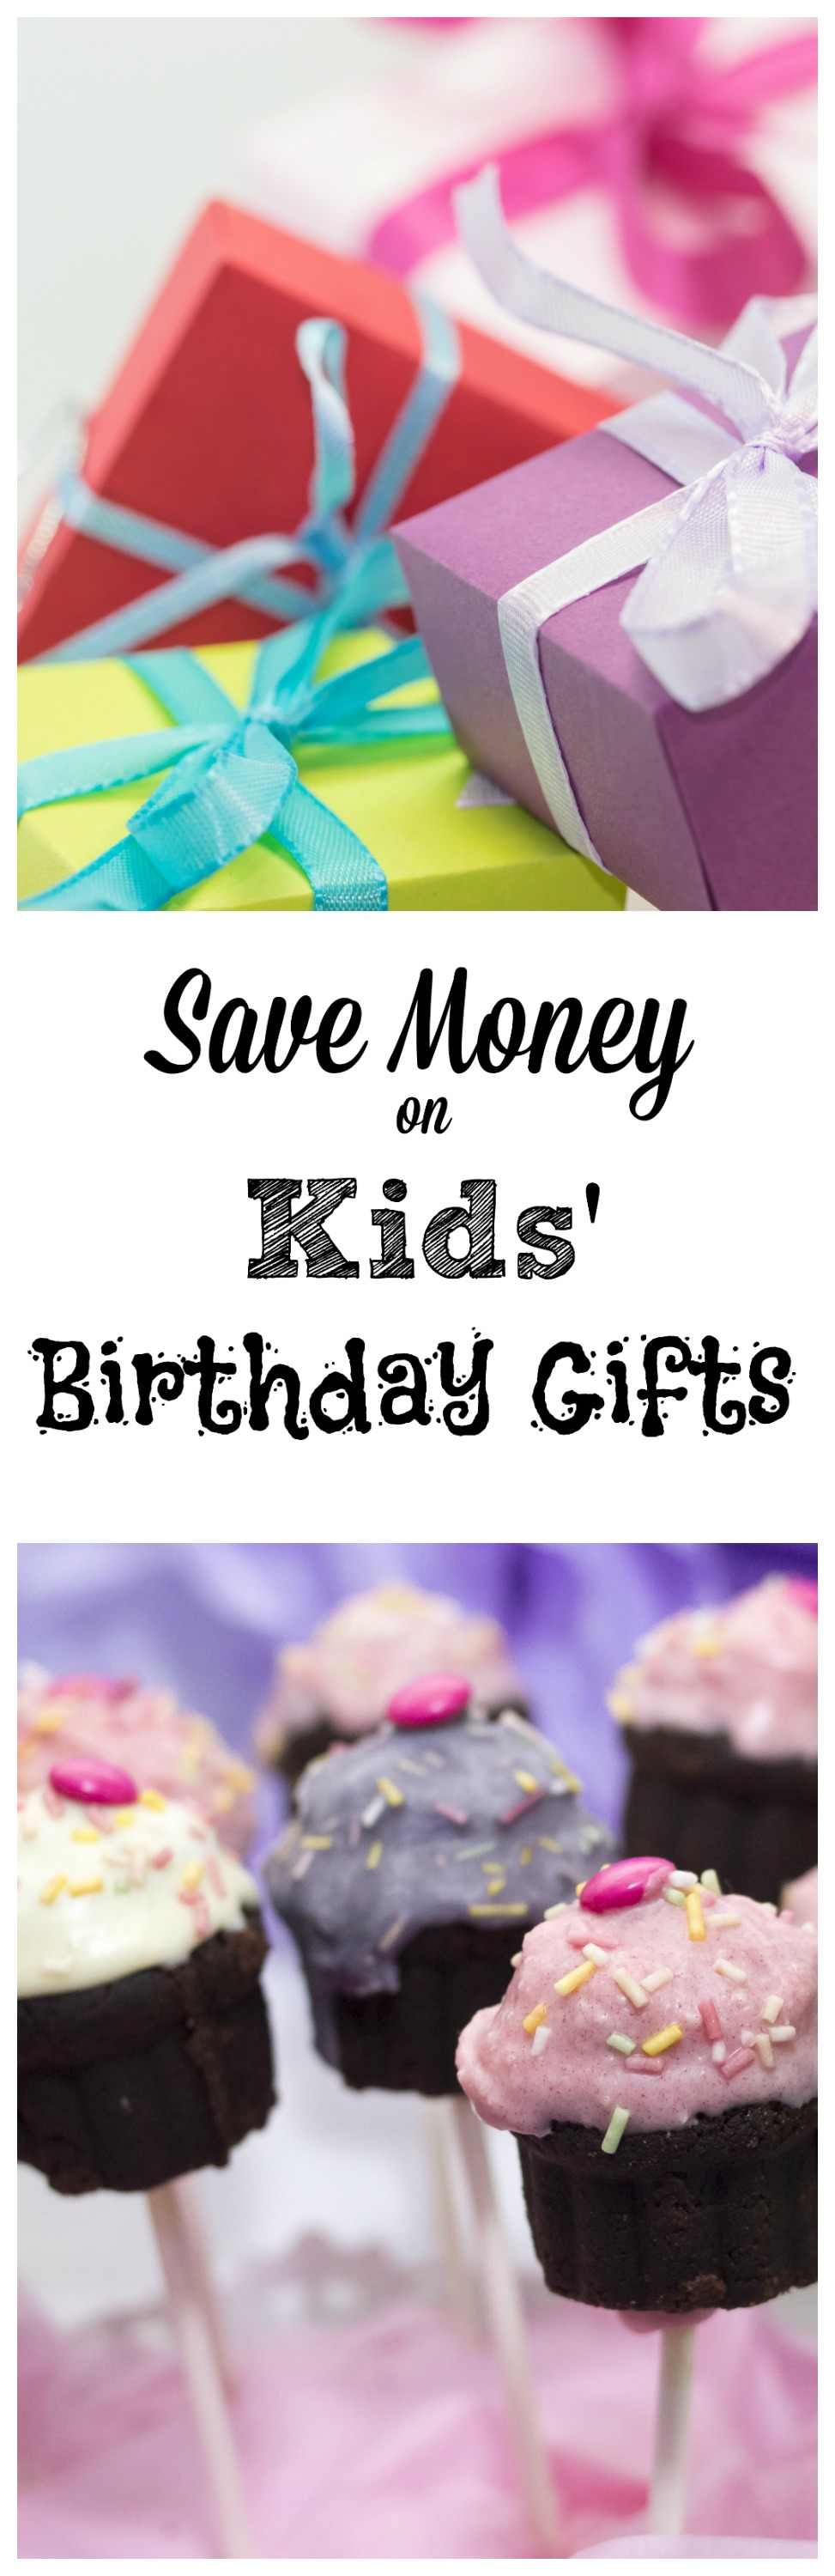 Save Money on Kids' Birthday Gifts with these 5 tips!